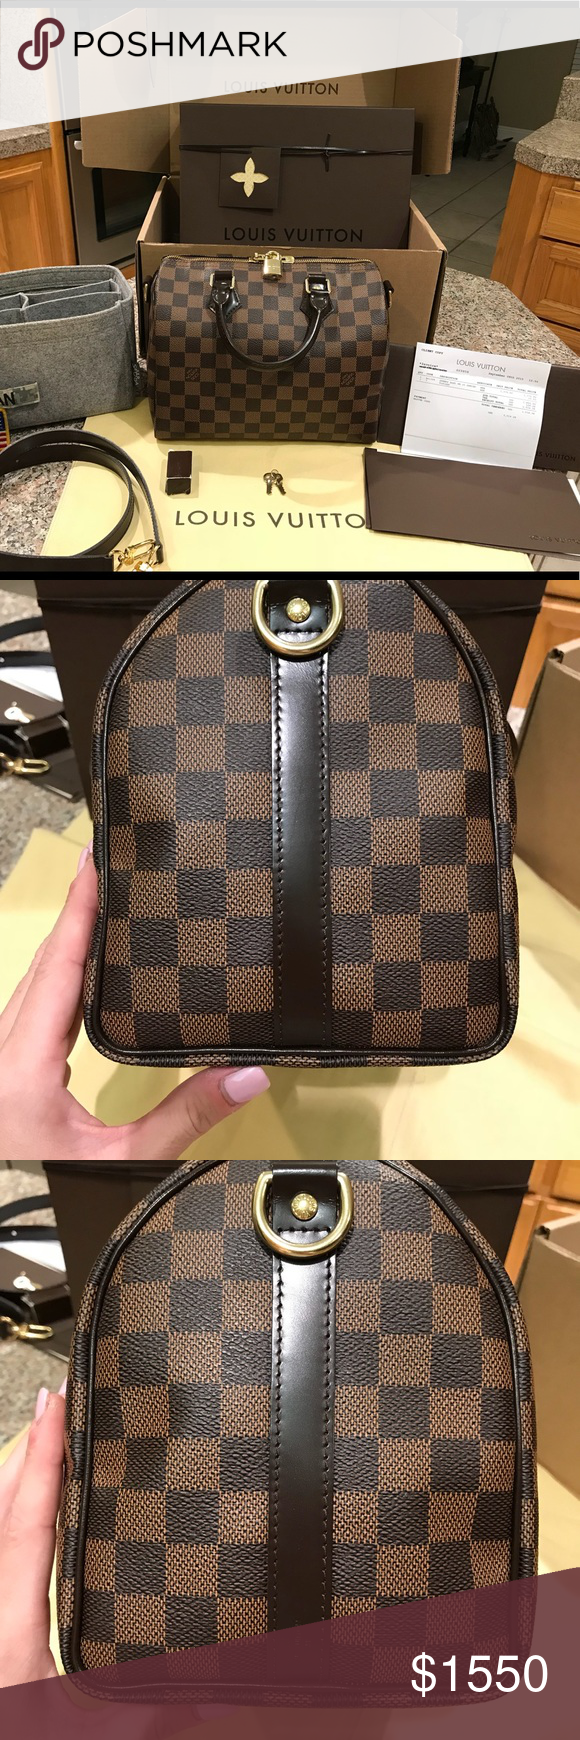 1a1534873ca Authentic Louis Vuitton Speedy Bandouliere 25 Authentic Louis Vuitton Speedy  Bandouliere 25 Comes with -box